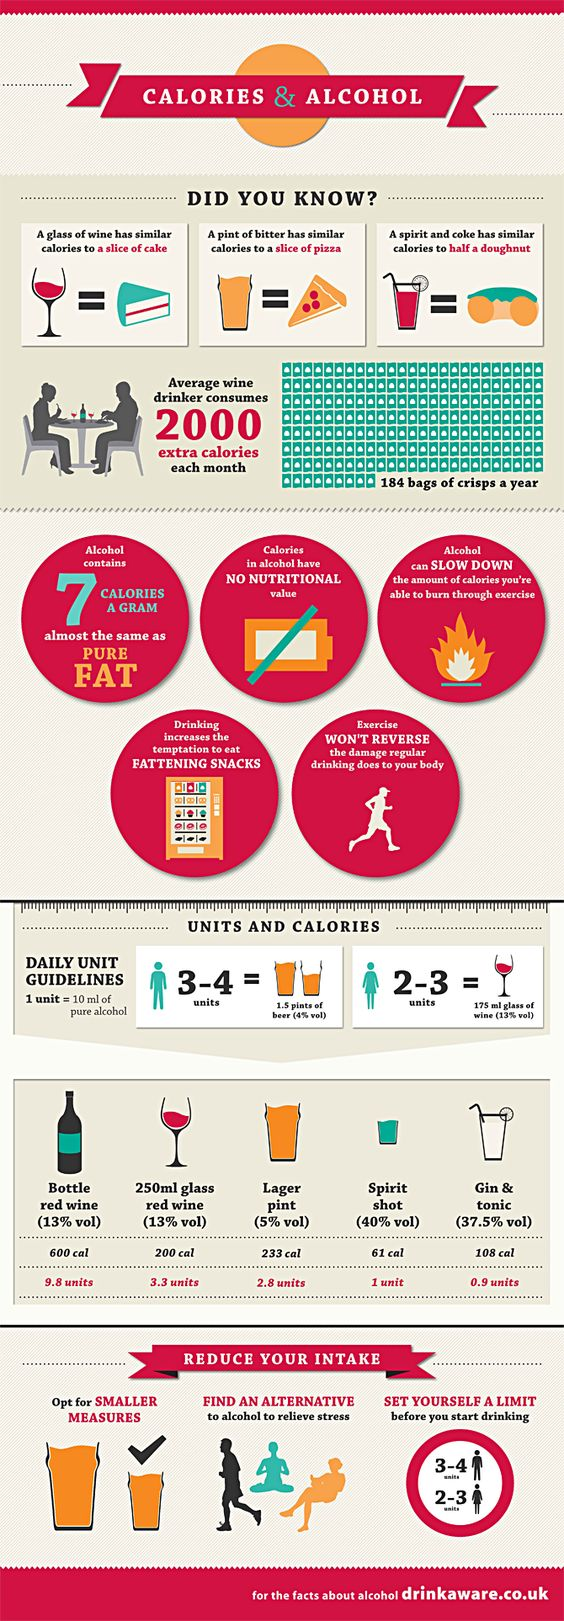 Calories and Alcohol